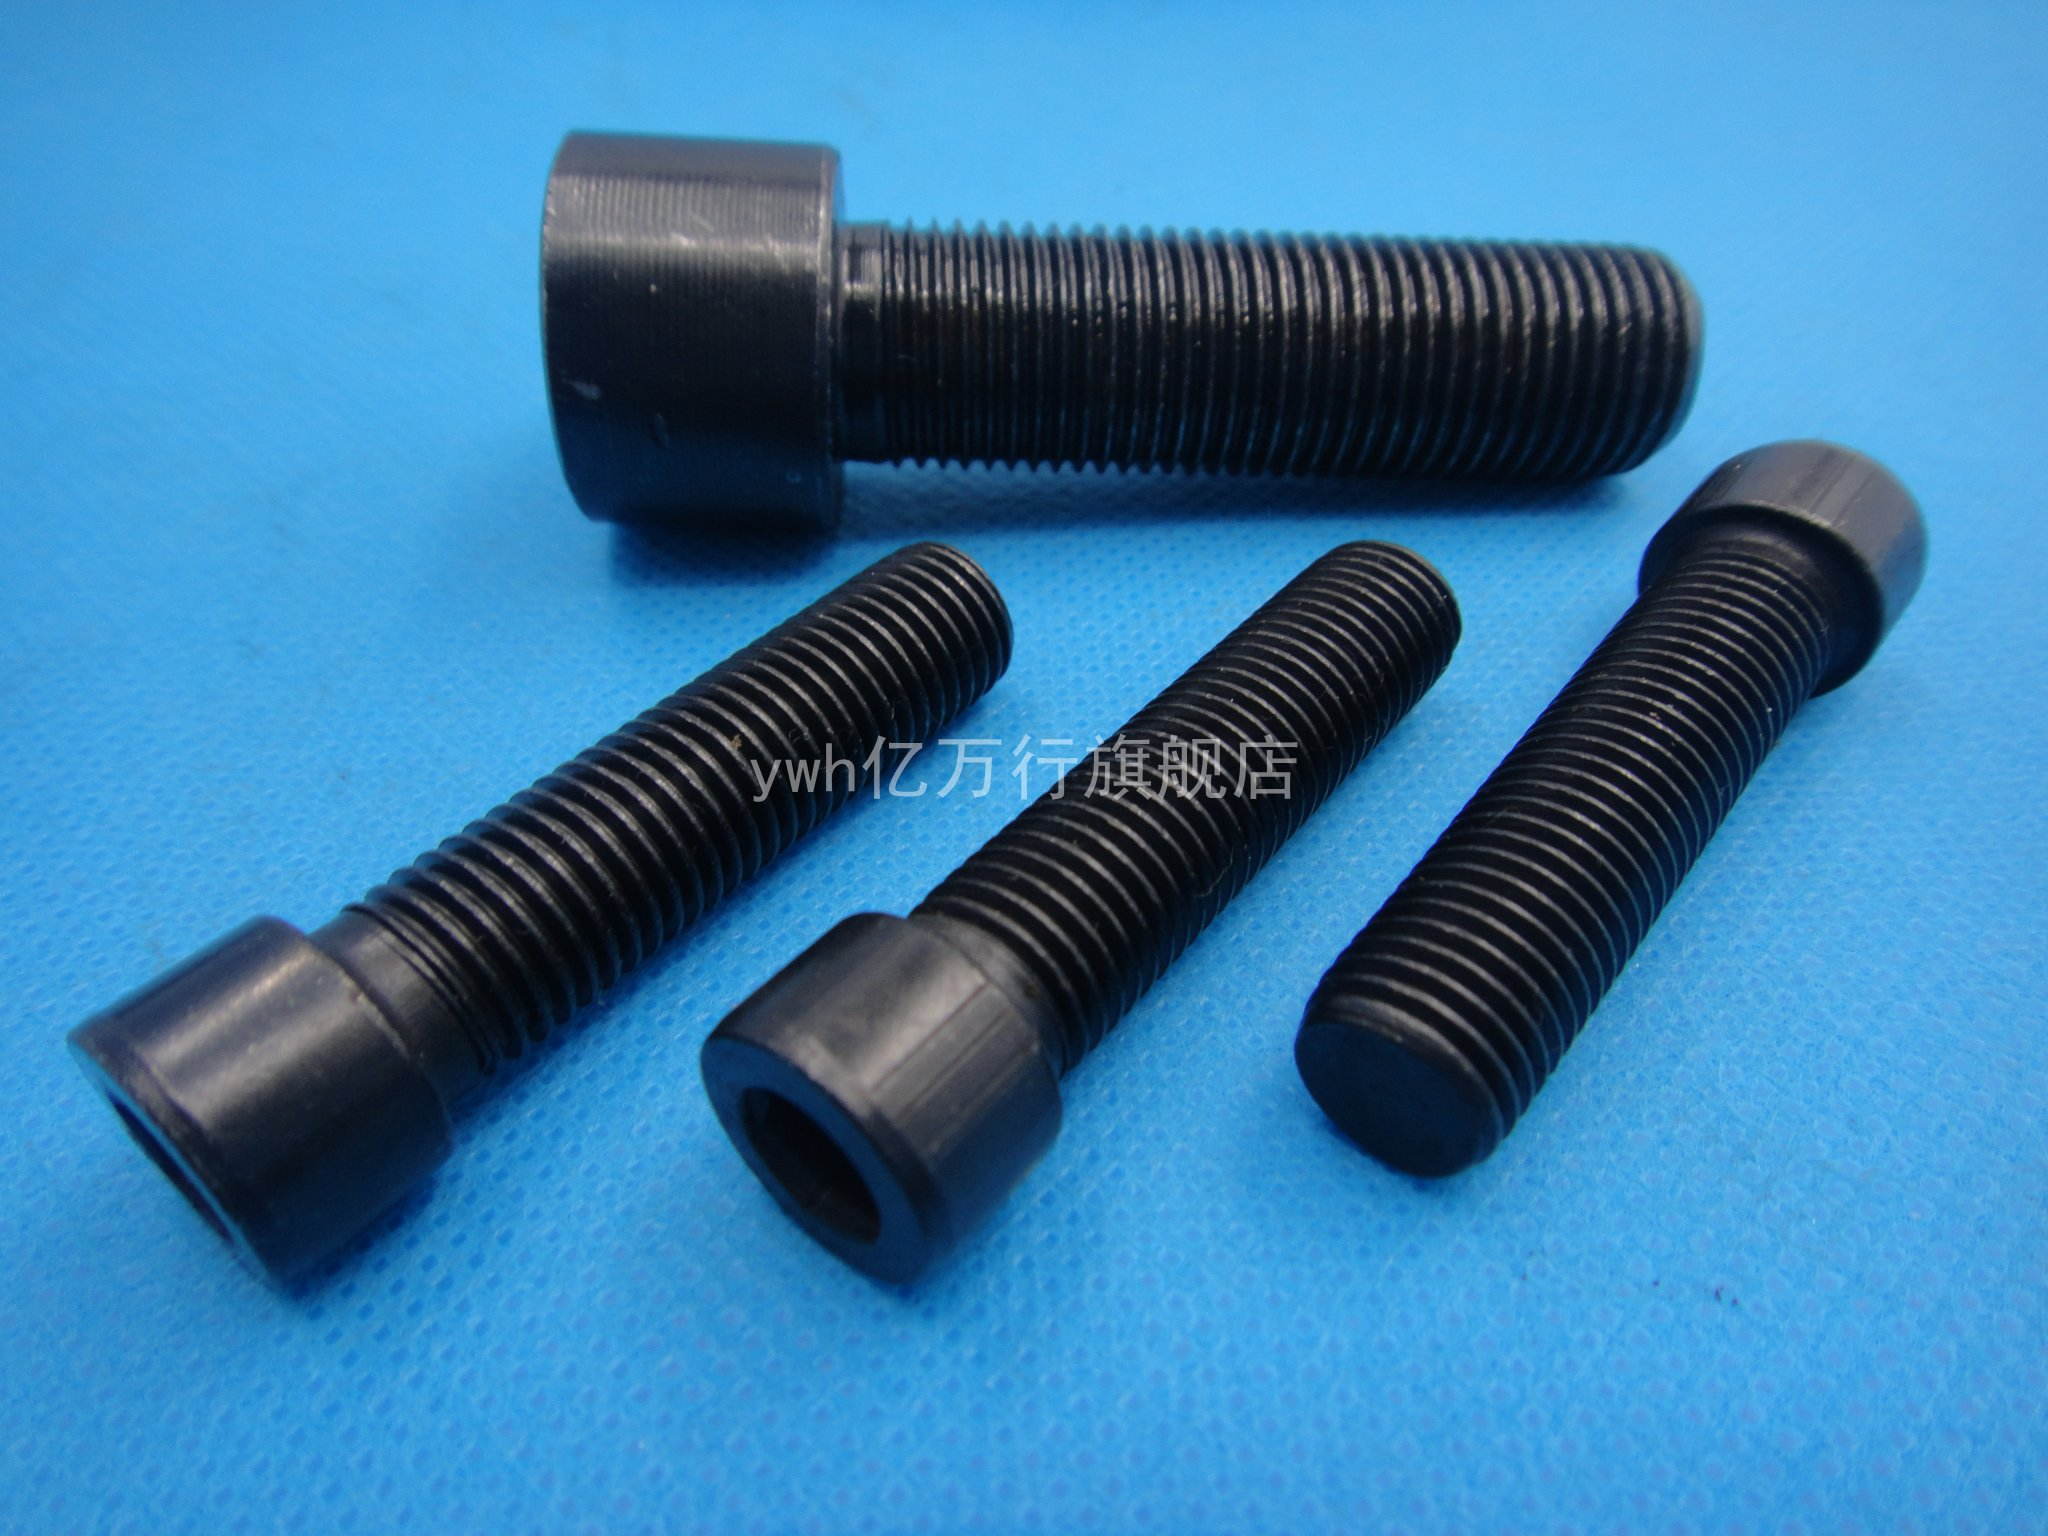 Fine tooth within gb70 hexagon socket head cap screws fine tooth socket head cap screws inside the cup head screws m8 * 1*16----30